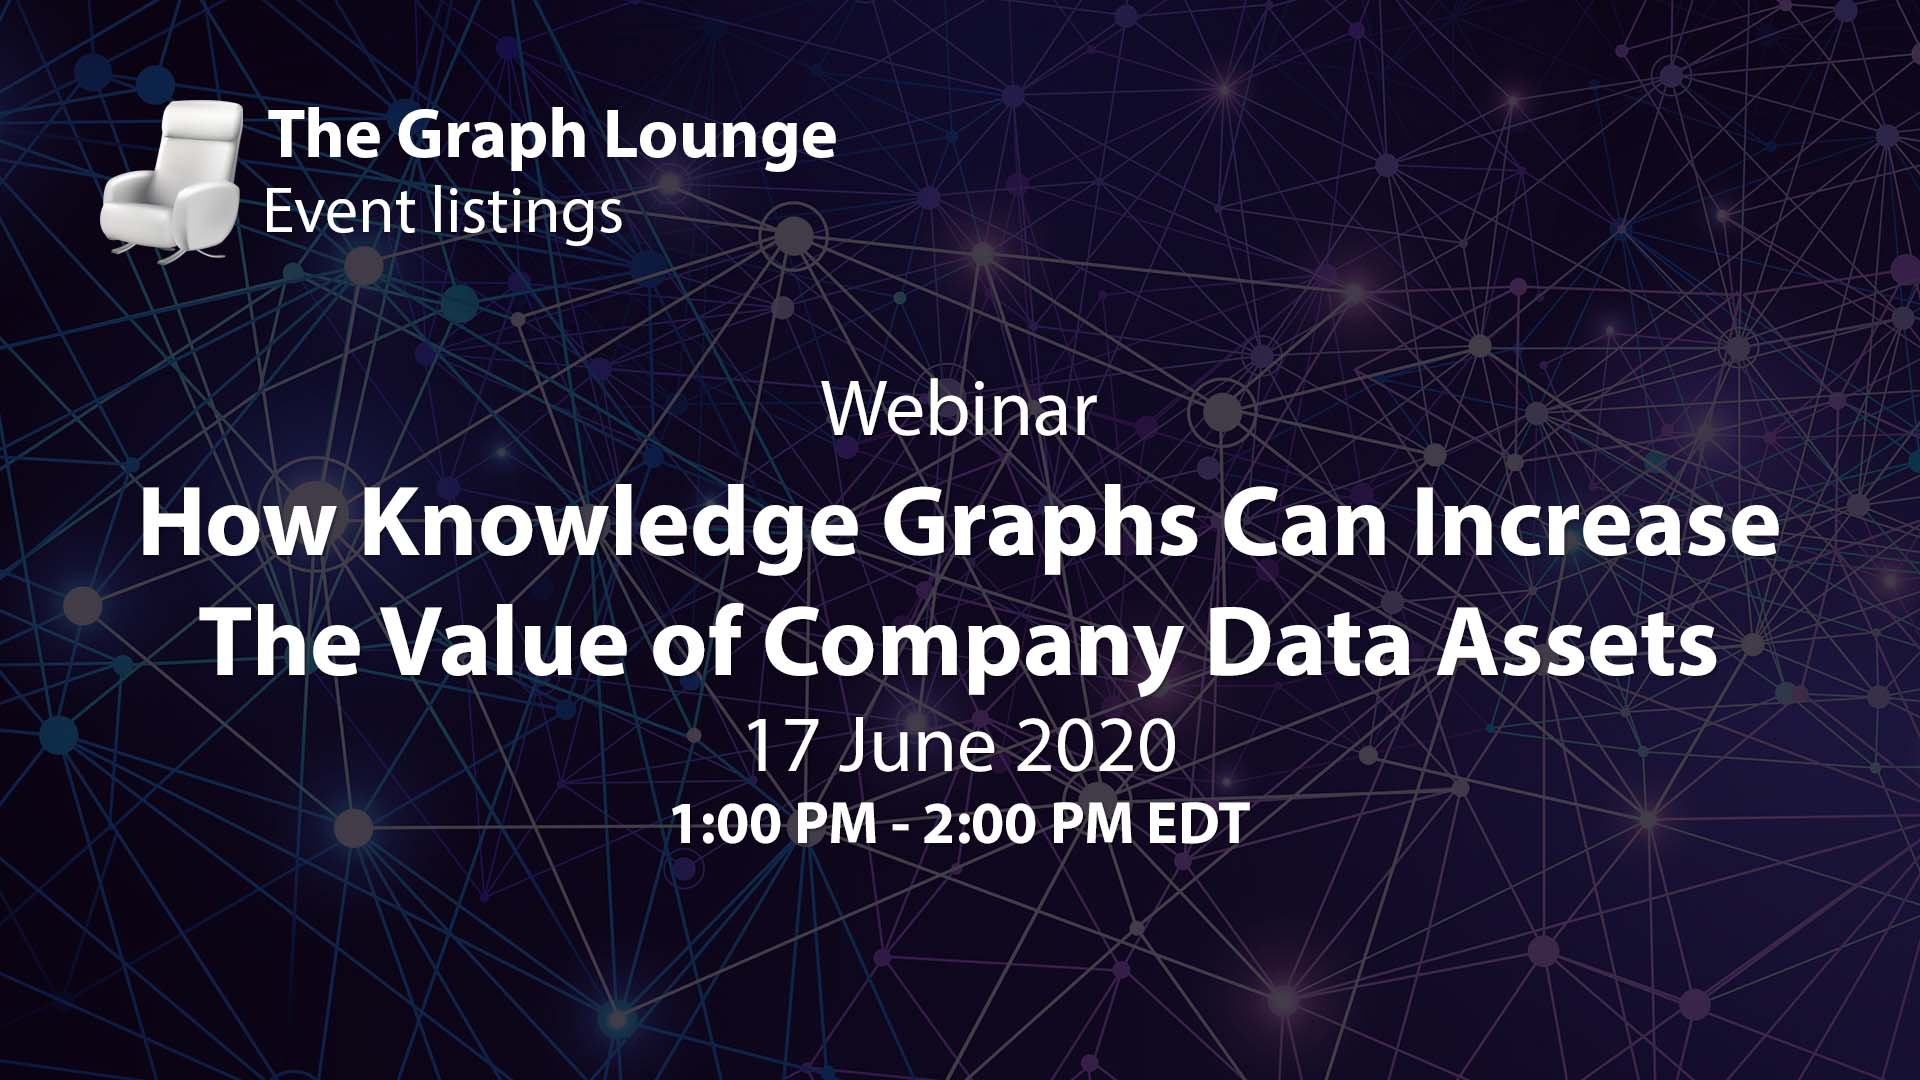 How Knowledge Graphs Can Increase The Value of Company Data Assets